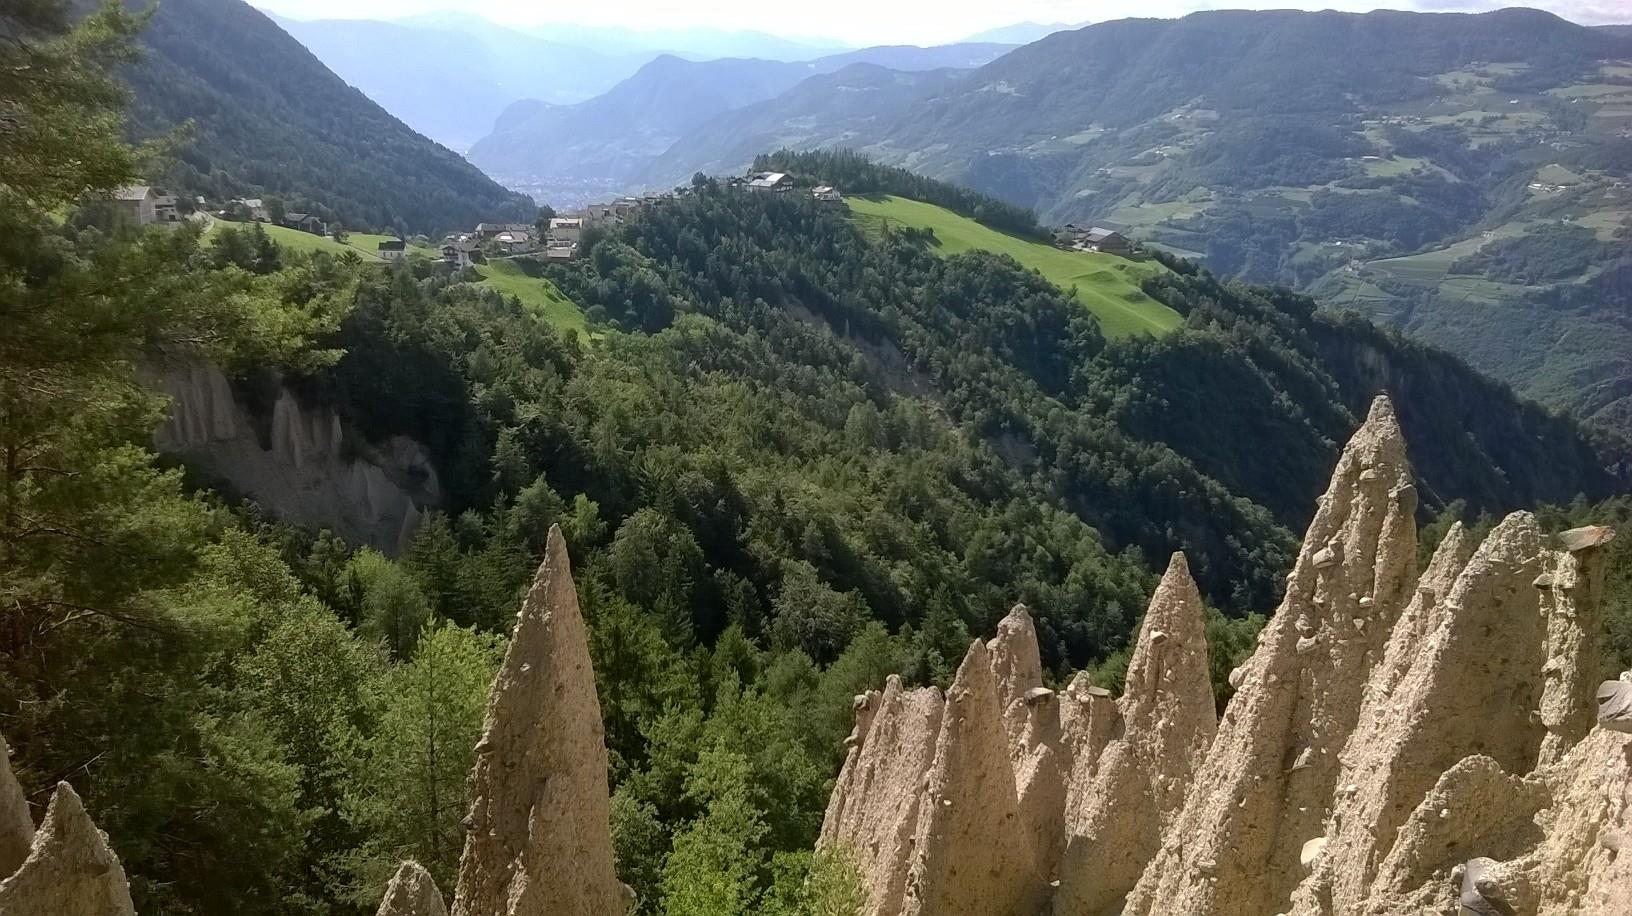 Pyramid Hike in Collepietra/Steinegg